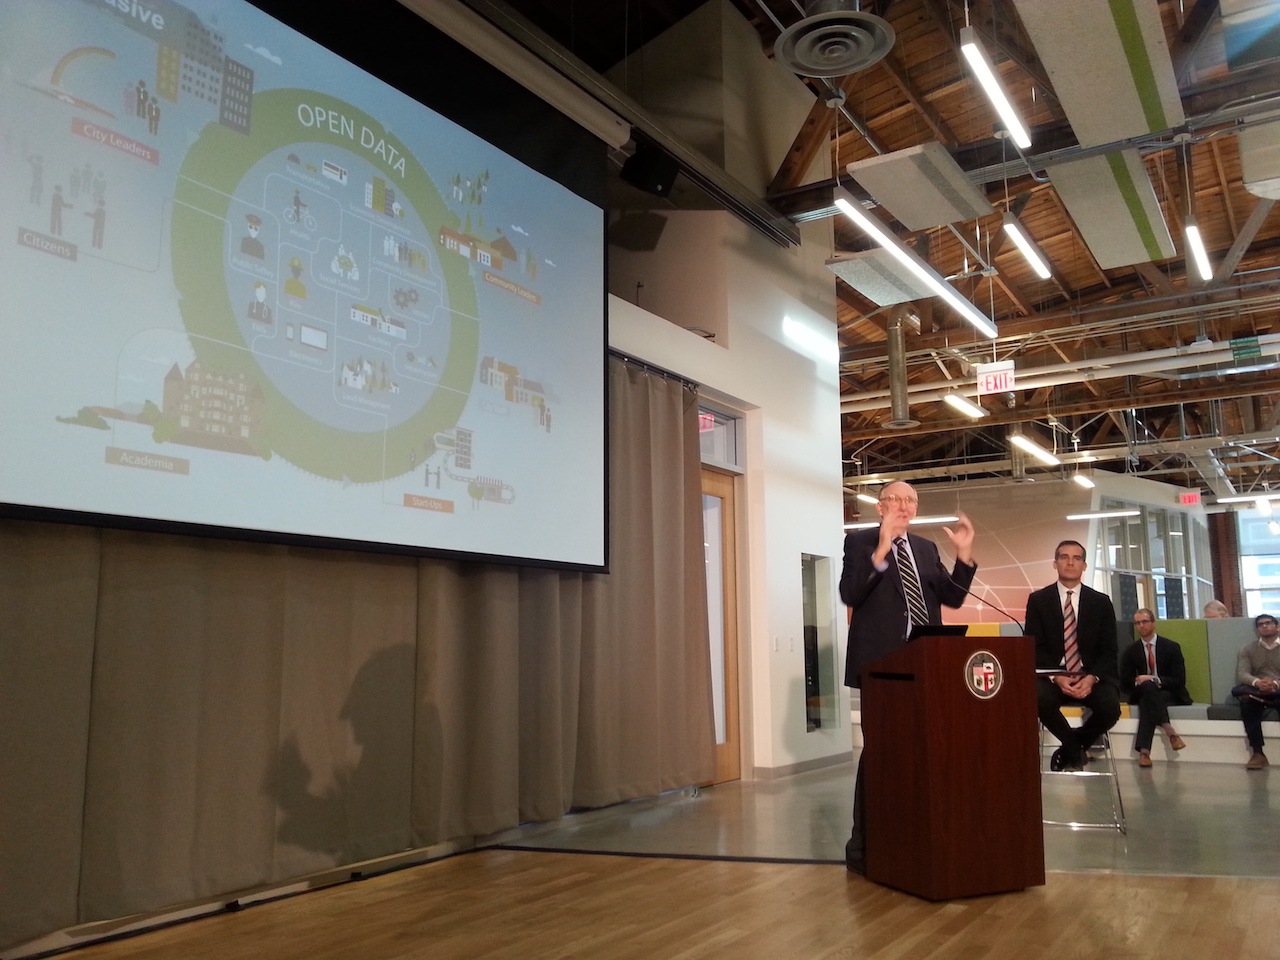 Valarm Esri Geohub LA Jack Dangermond Mayor Eric Garcetti Industrial IoT Applications Remote Monitoring Water Sensors